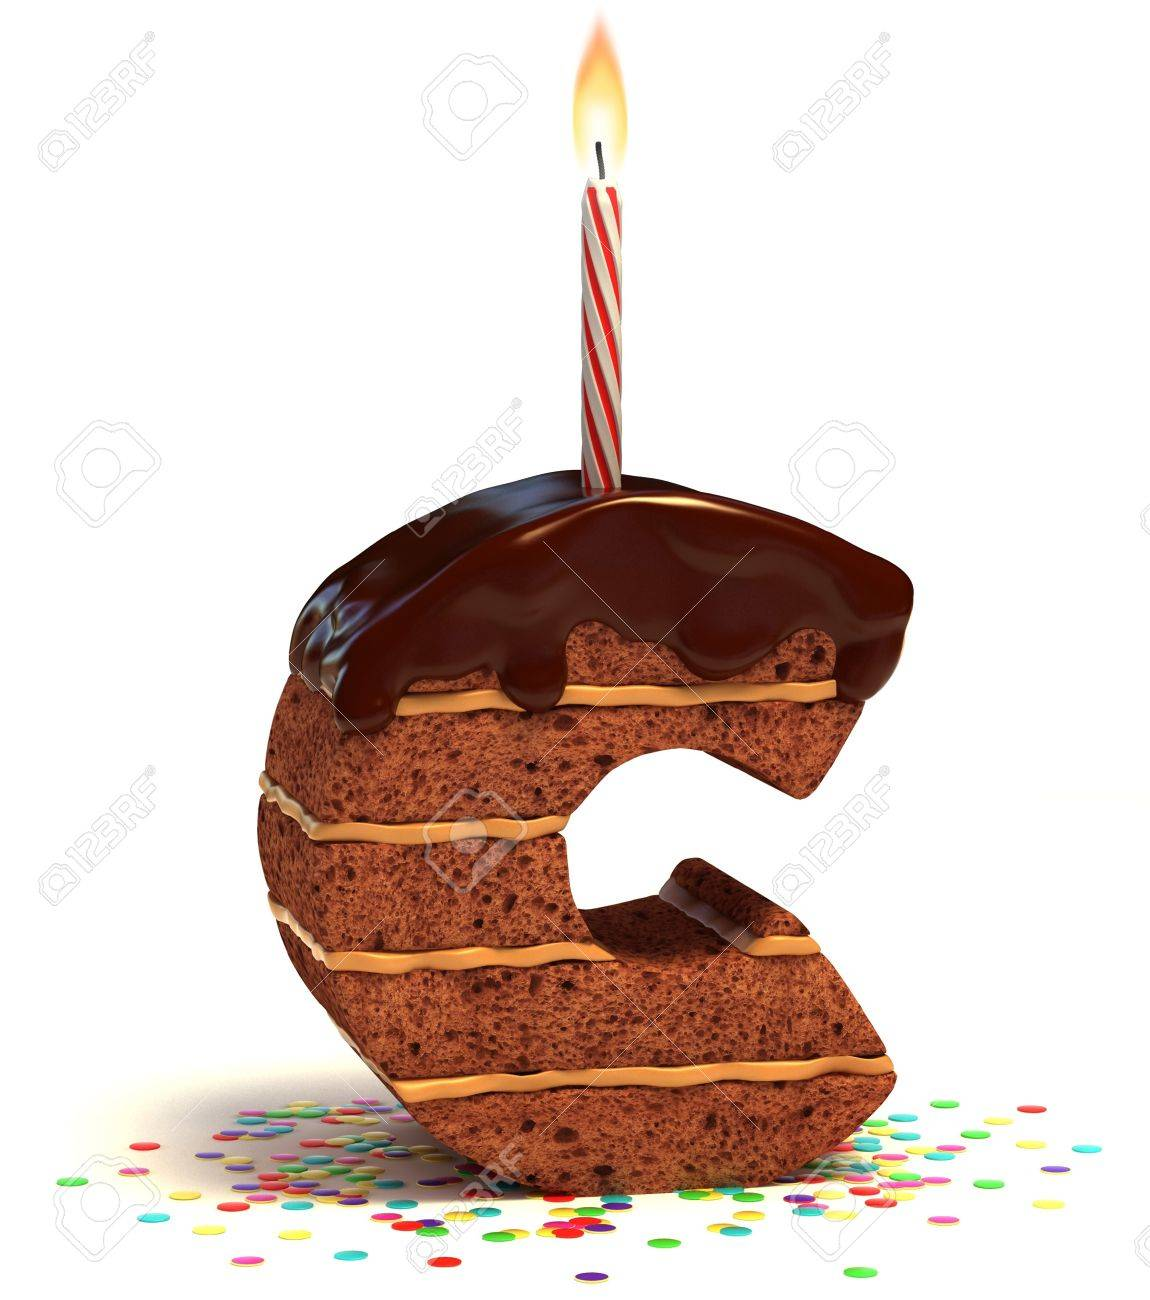 letter c shaped chocolate birthday cake with lit candle and confetti isolated over white background